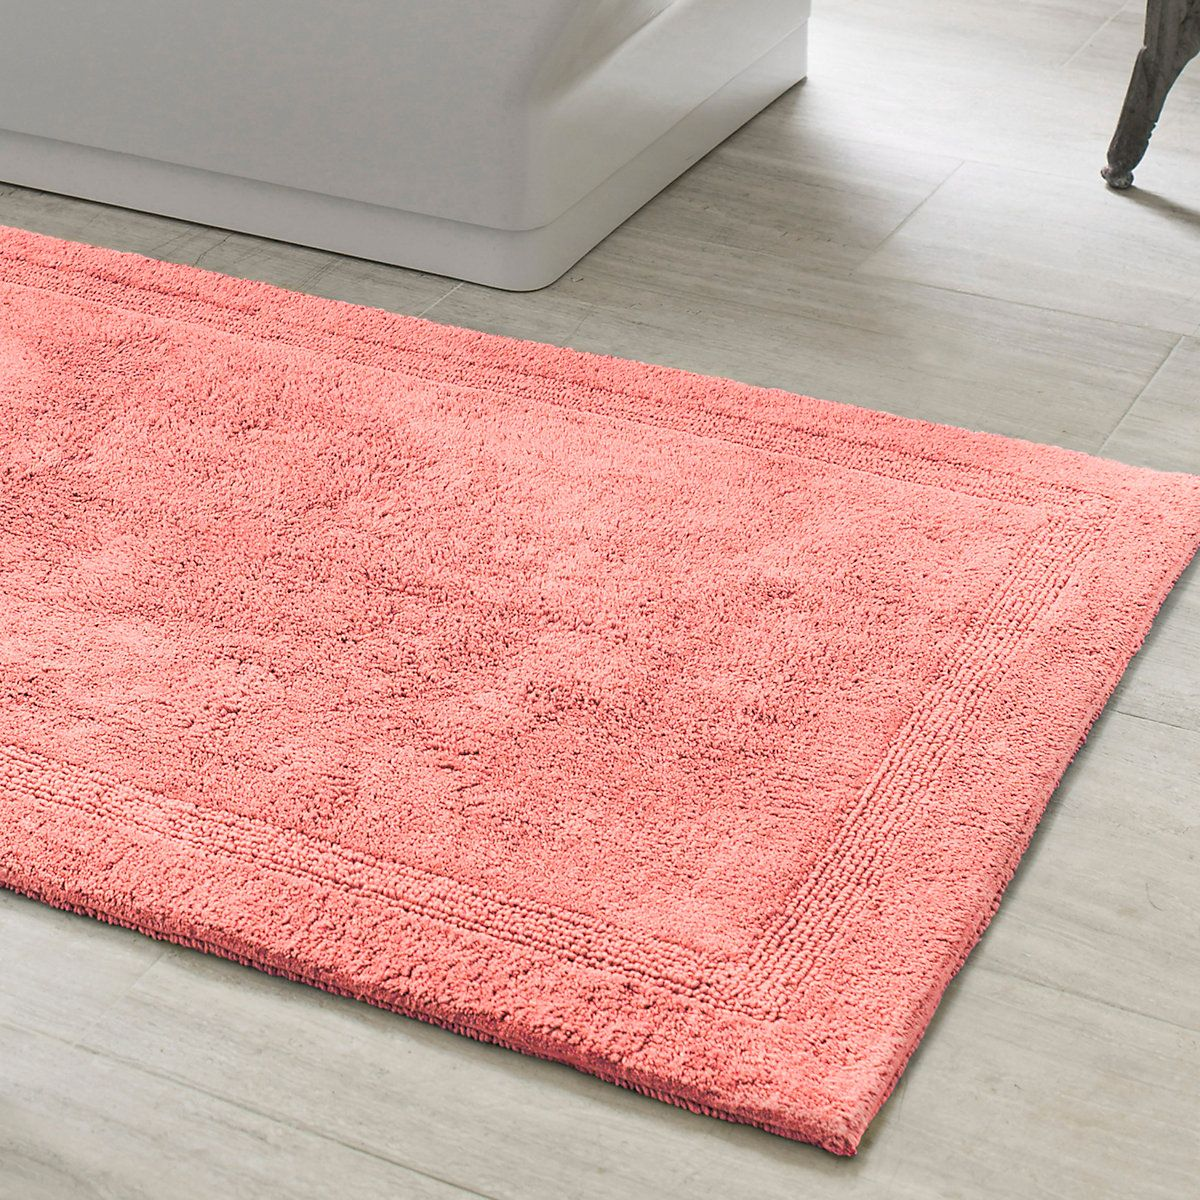 signature coral bath rug | bath rugs and bath